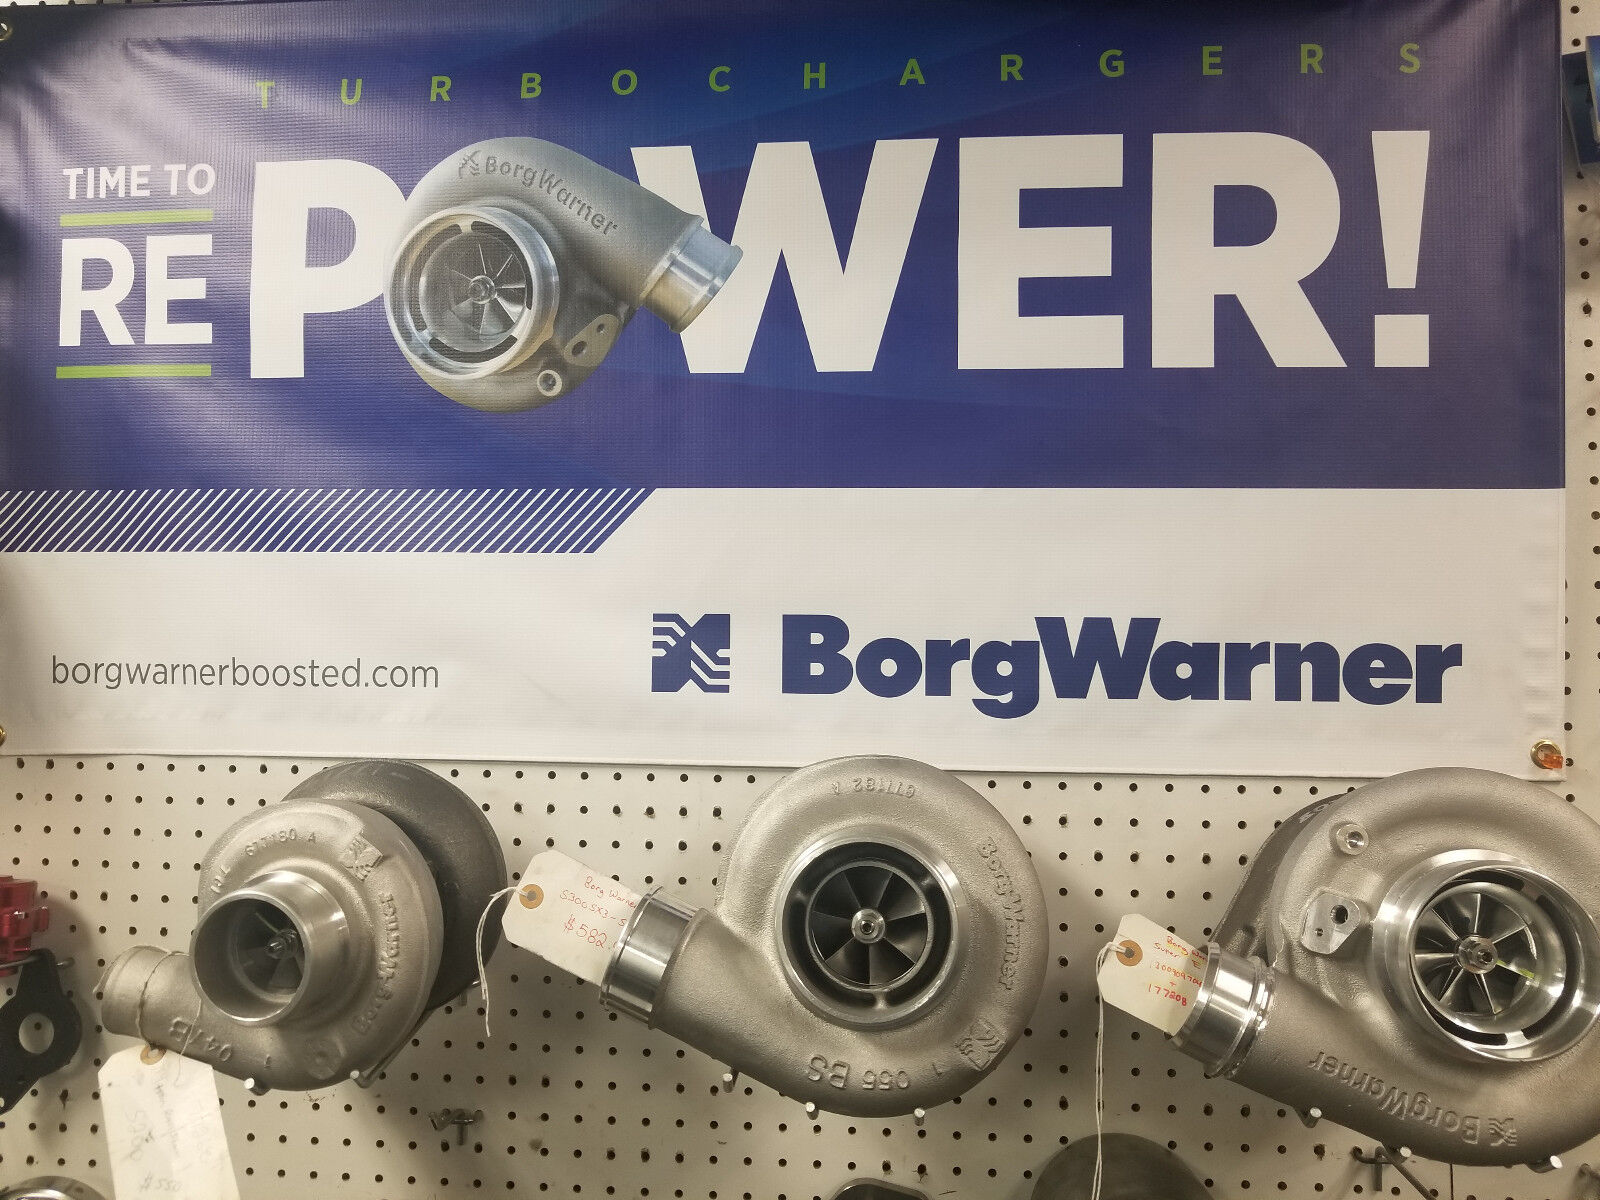 Details About New Borg Warner Turbocharger S300sx3 66 S366 91 A R T4 Airwerks 177275